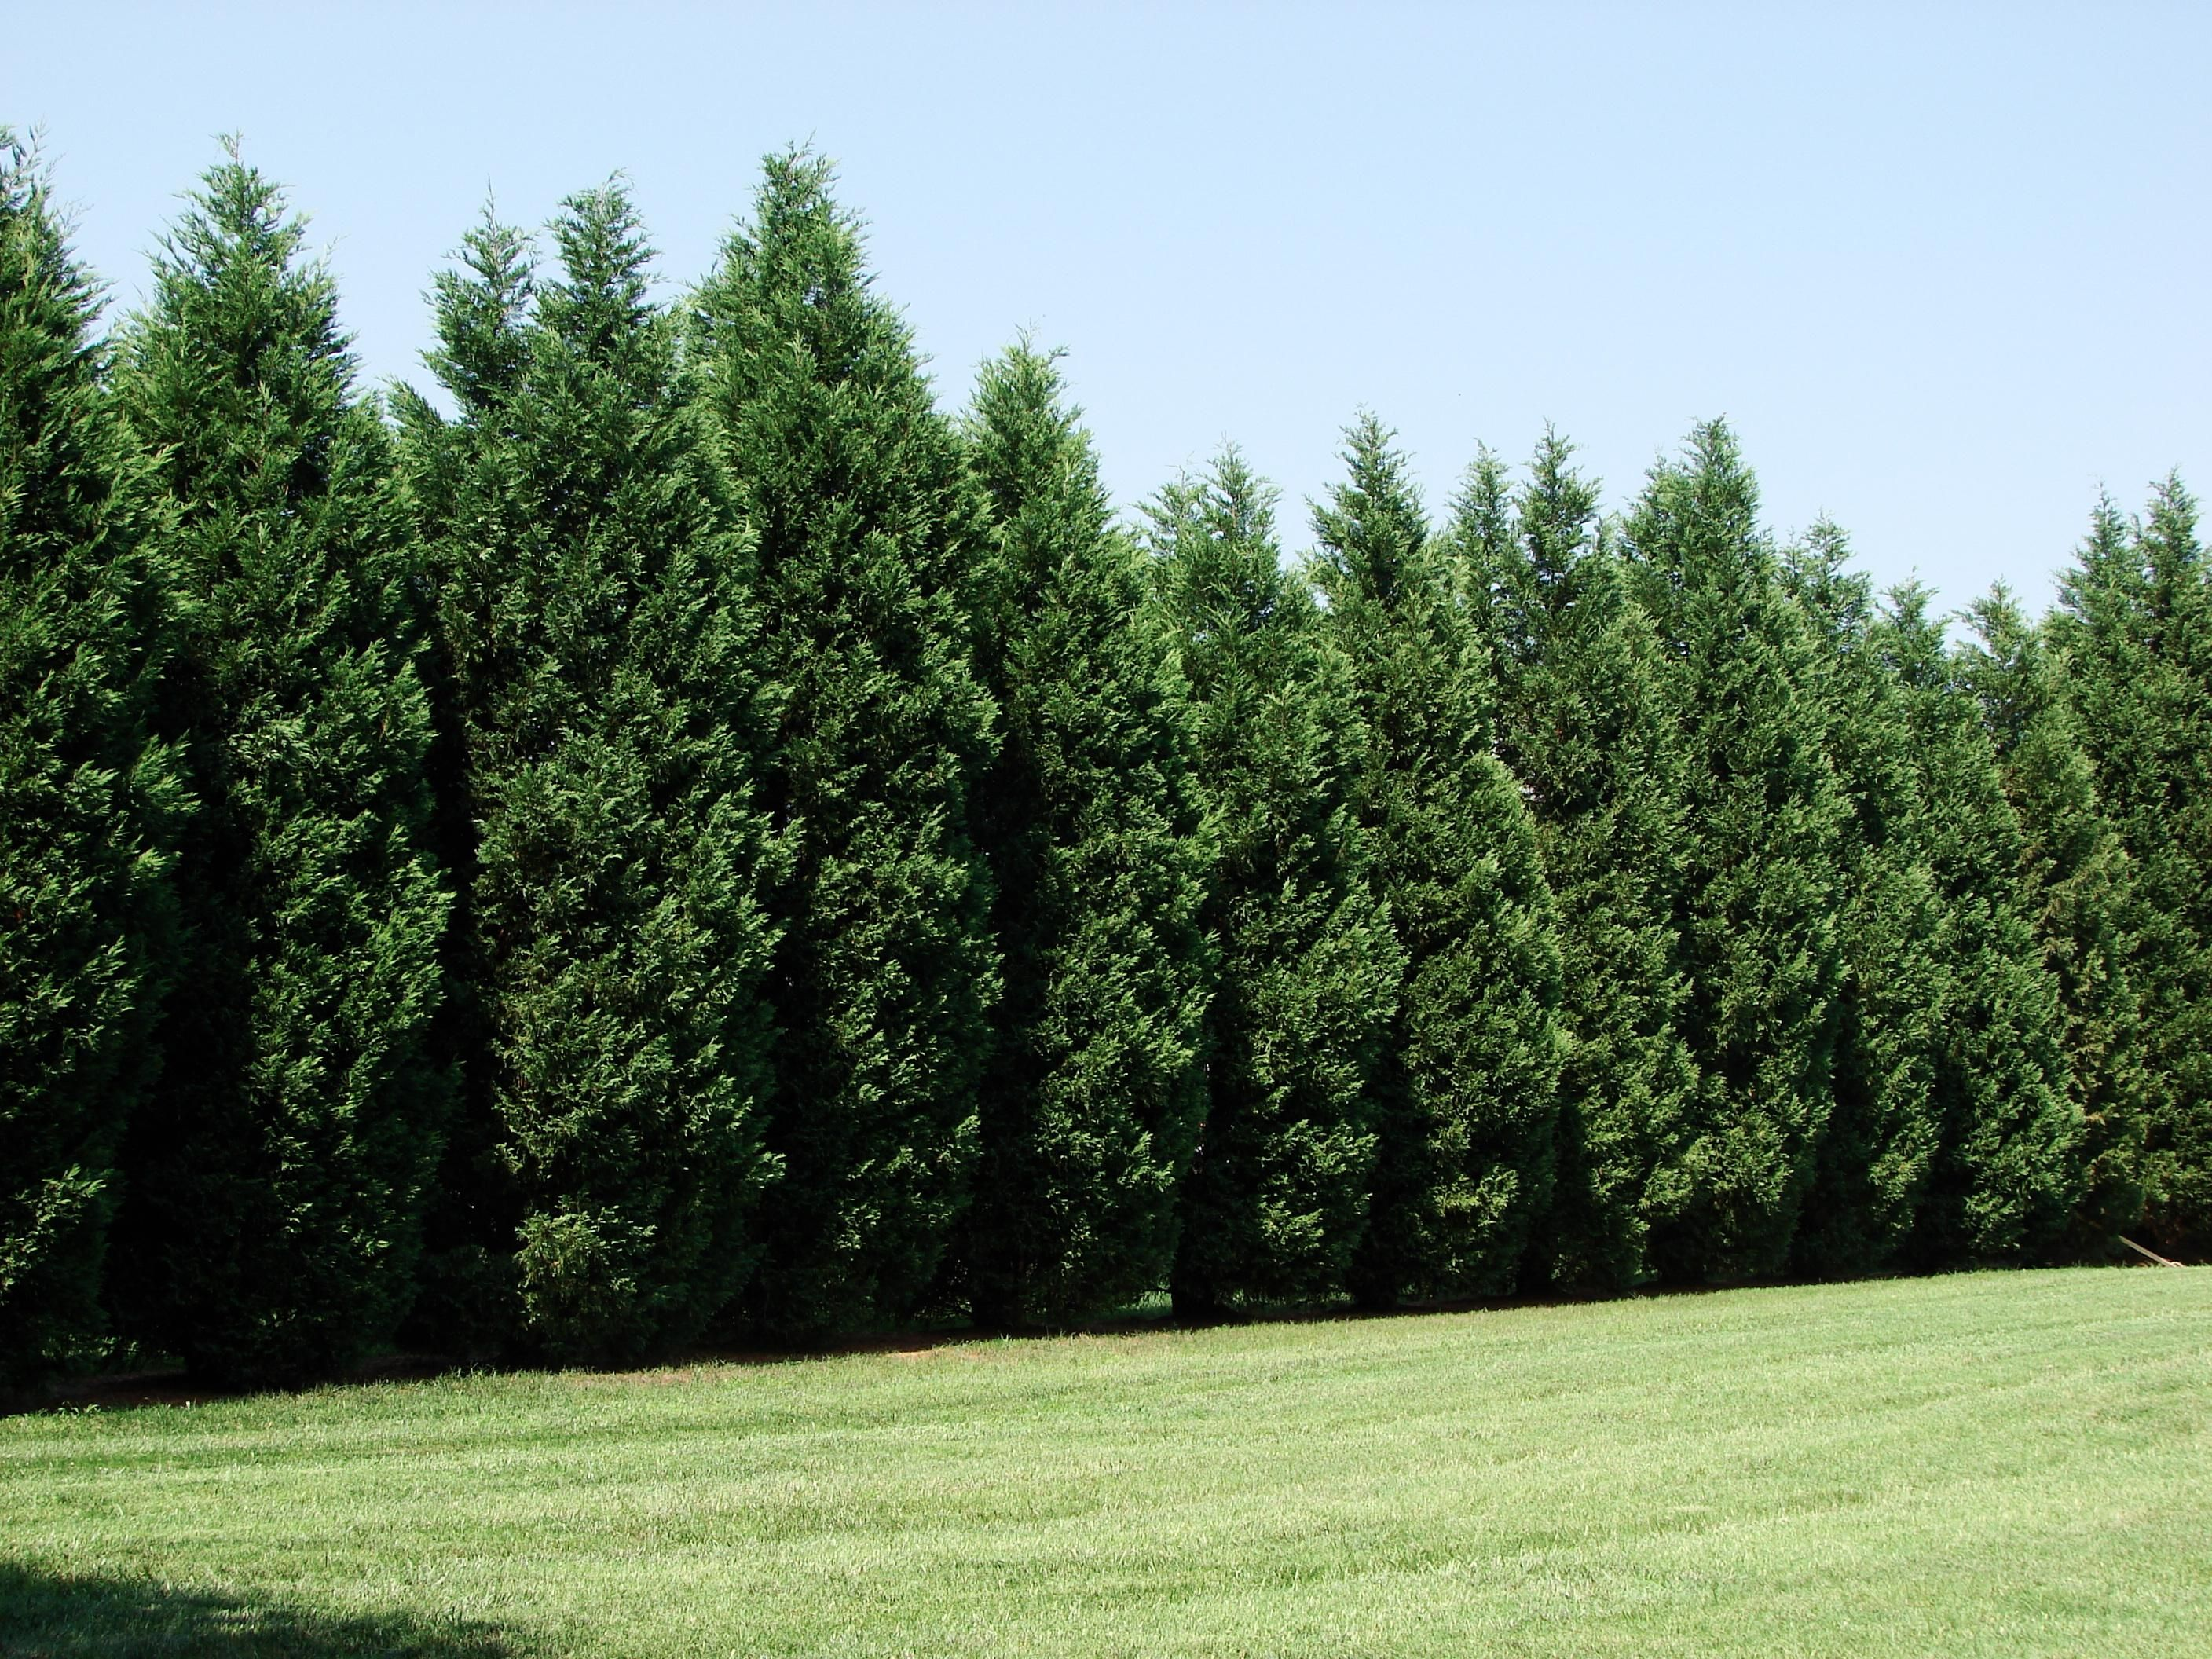 Best shrubs for full sun and privacy - 12 Reasons Proving Leyland Cypress Trees Are Best